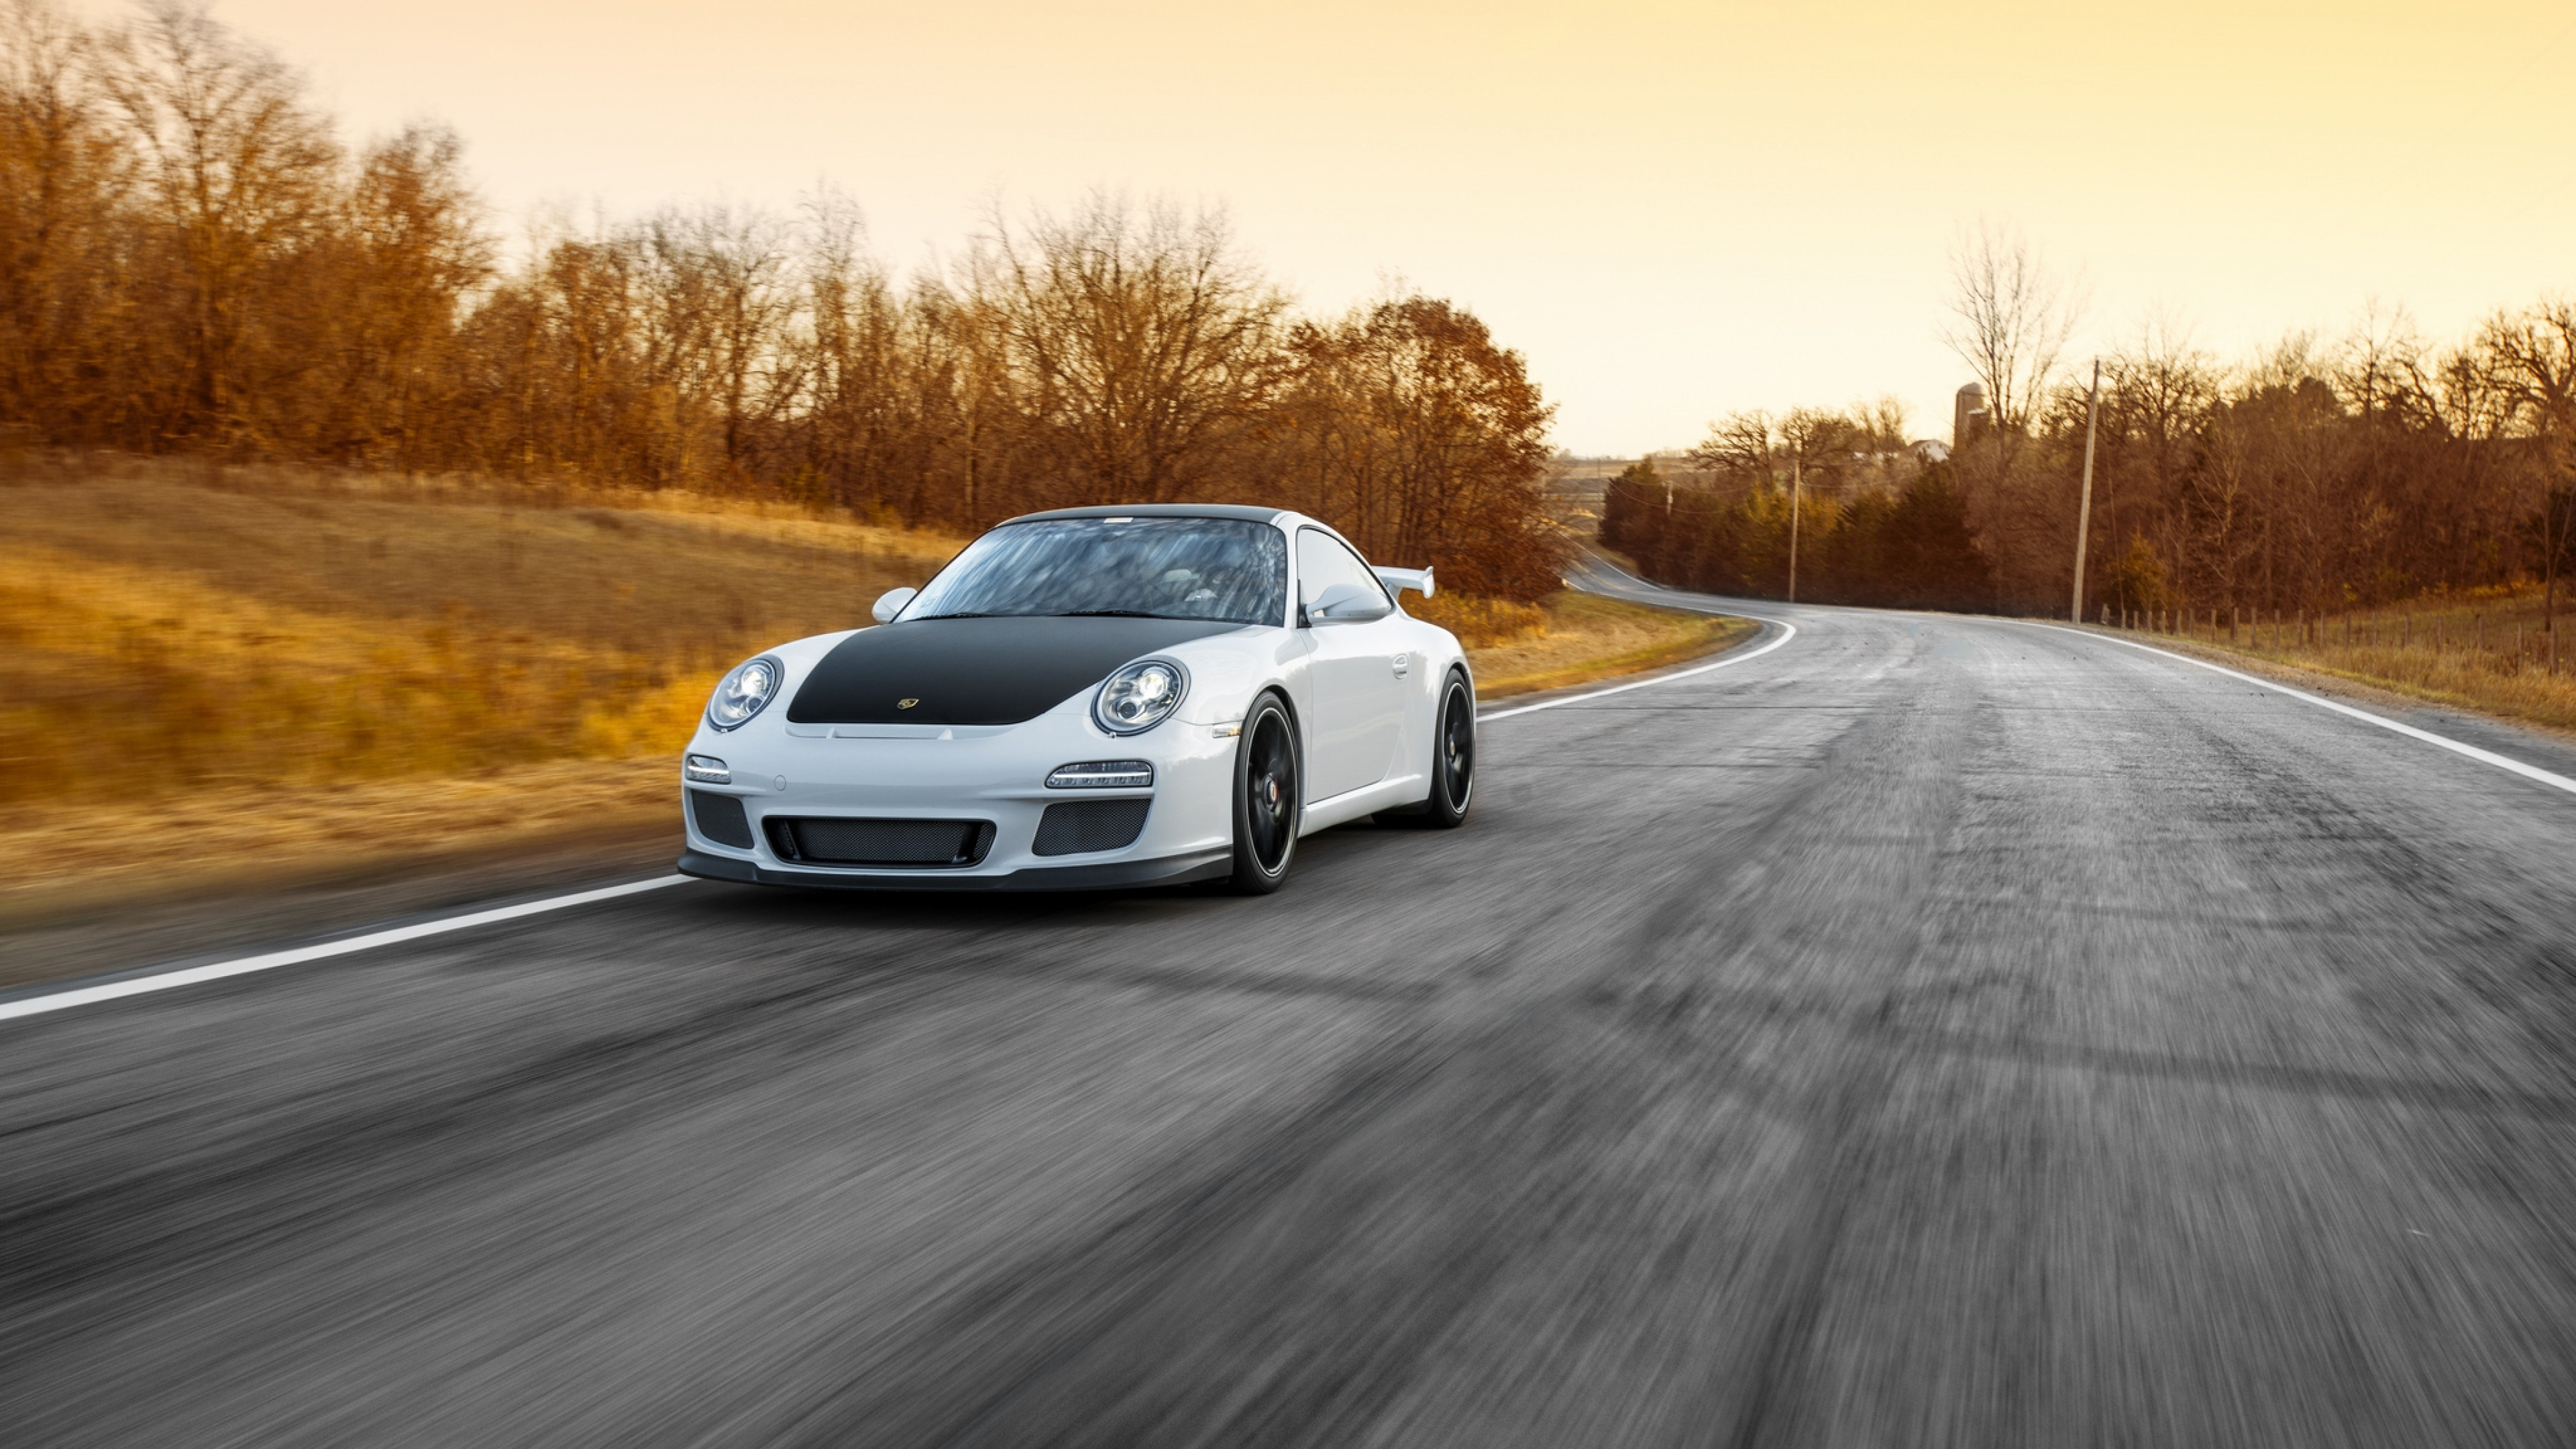 3840x2160 Preview wallpaper porsche, 911, gt3, road, motion, speed